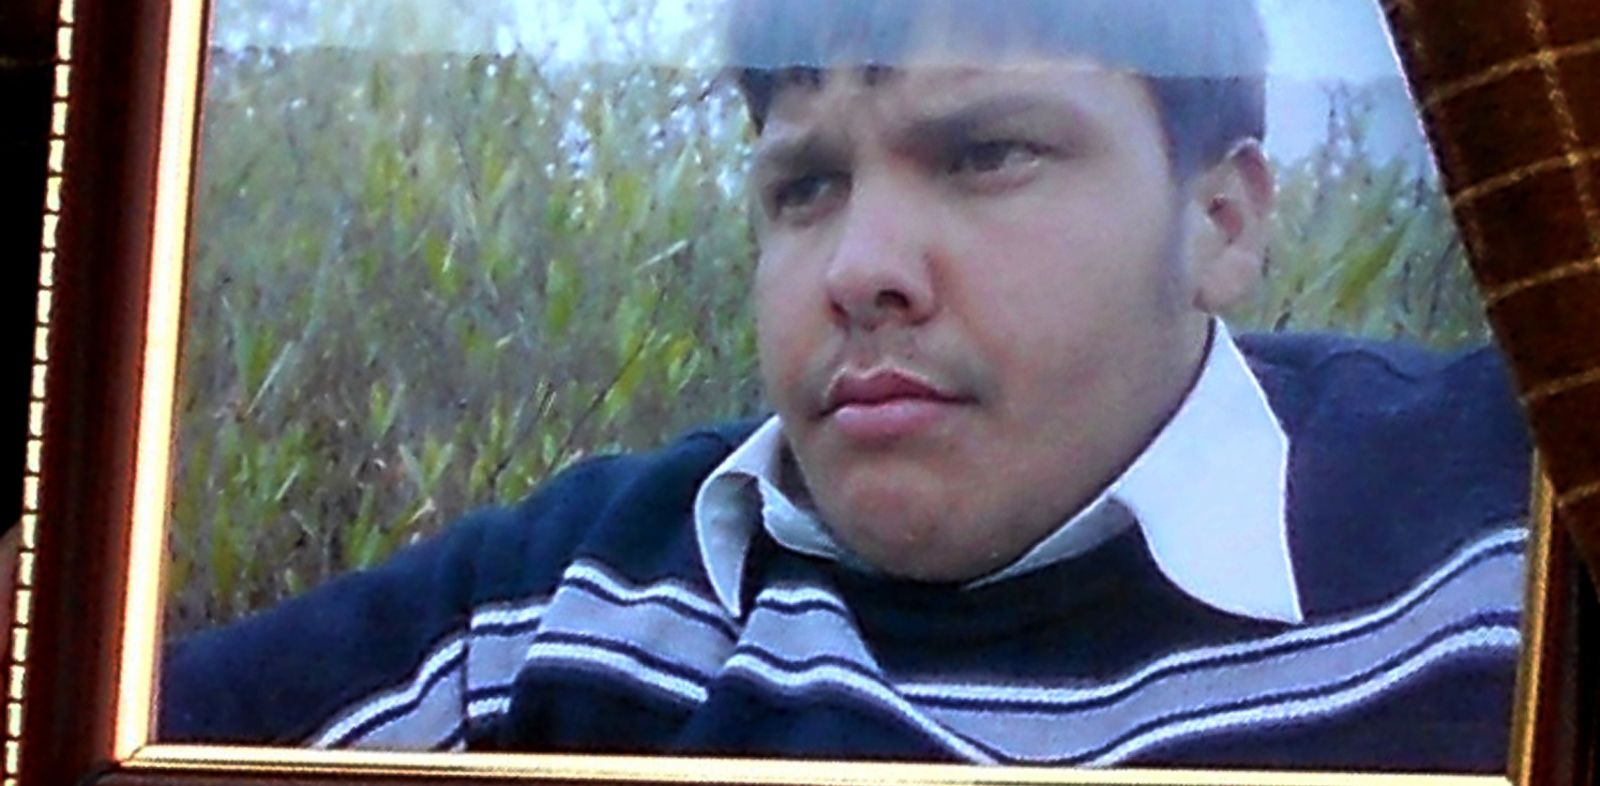 PHOTO: Aitzaz Hasan, who residents and police say died this week while trying to stop a suicide bomber who was targeting his school, is seen in this undated photo, Jan. 10, 2014.